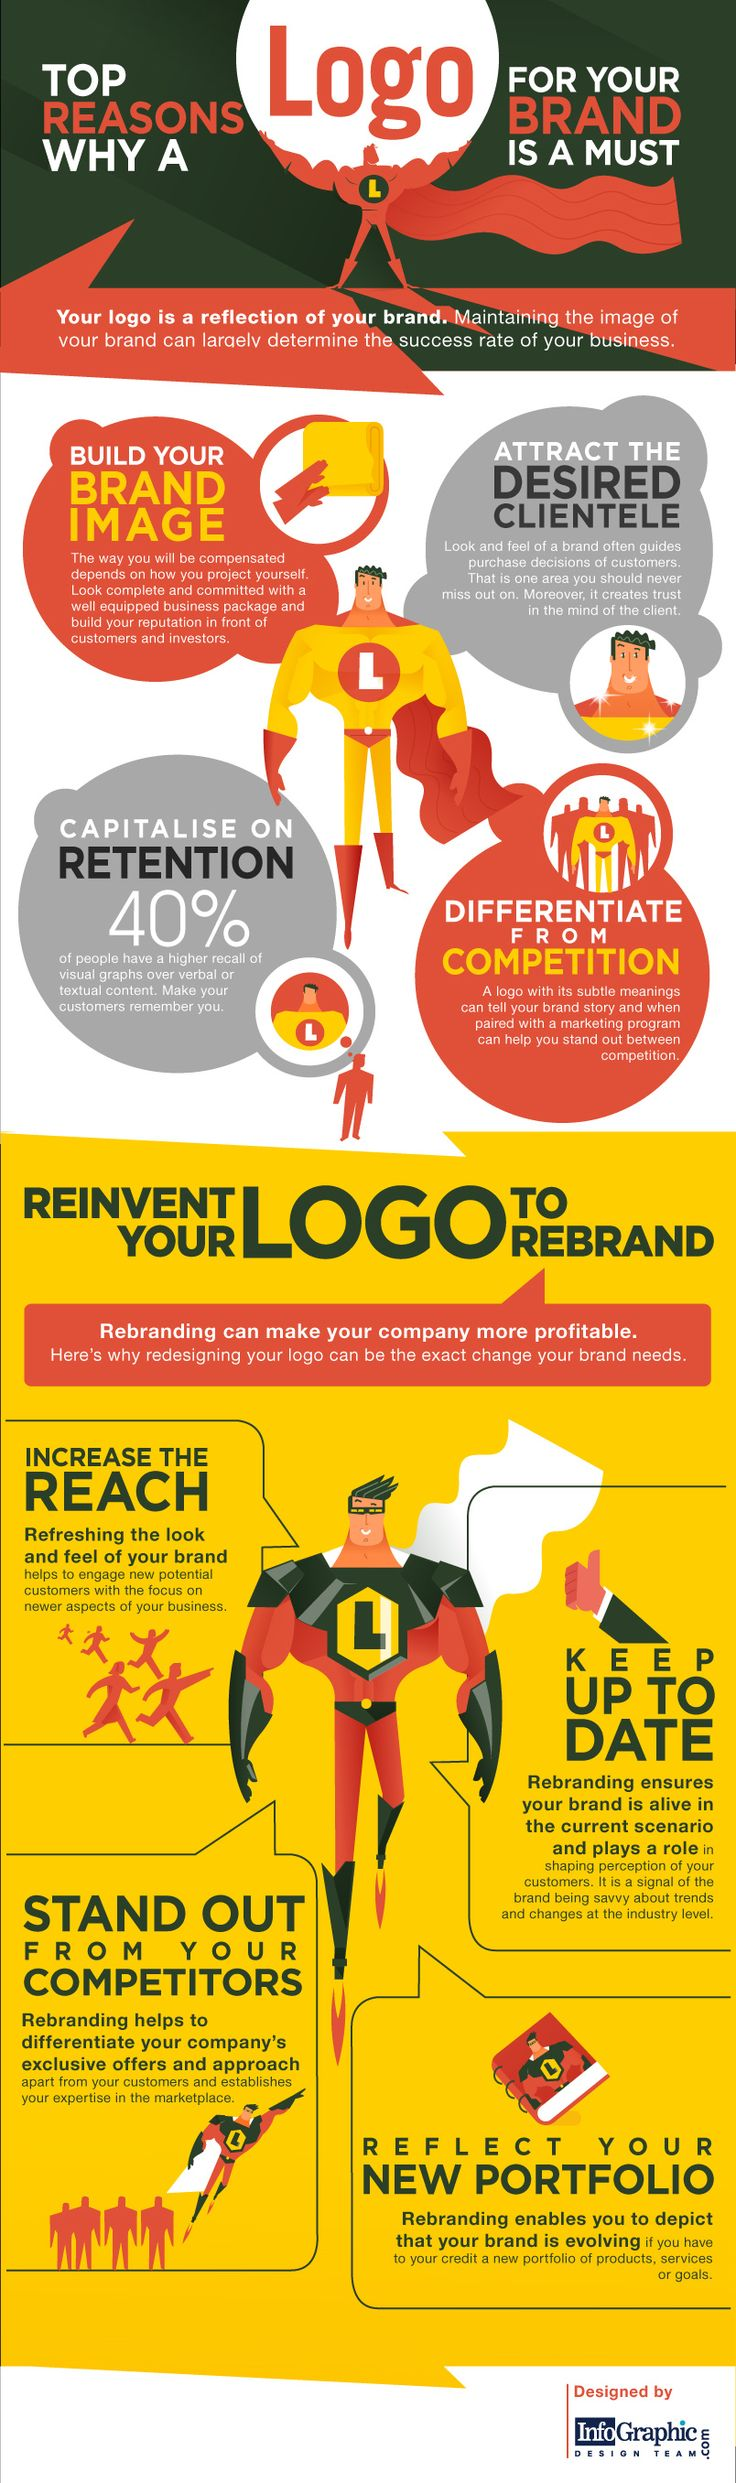 Top Reasons Why A Logo Is A Must For Your Brand